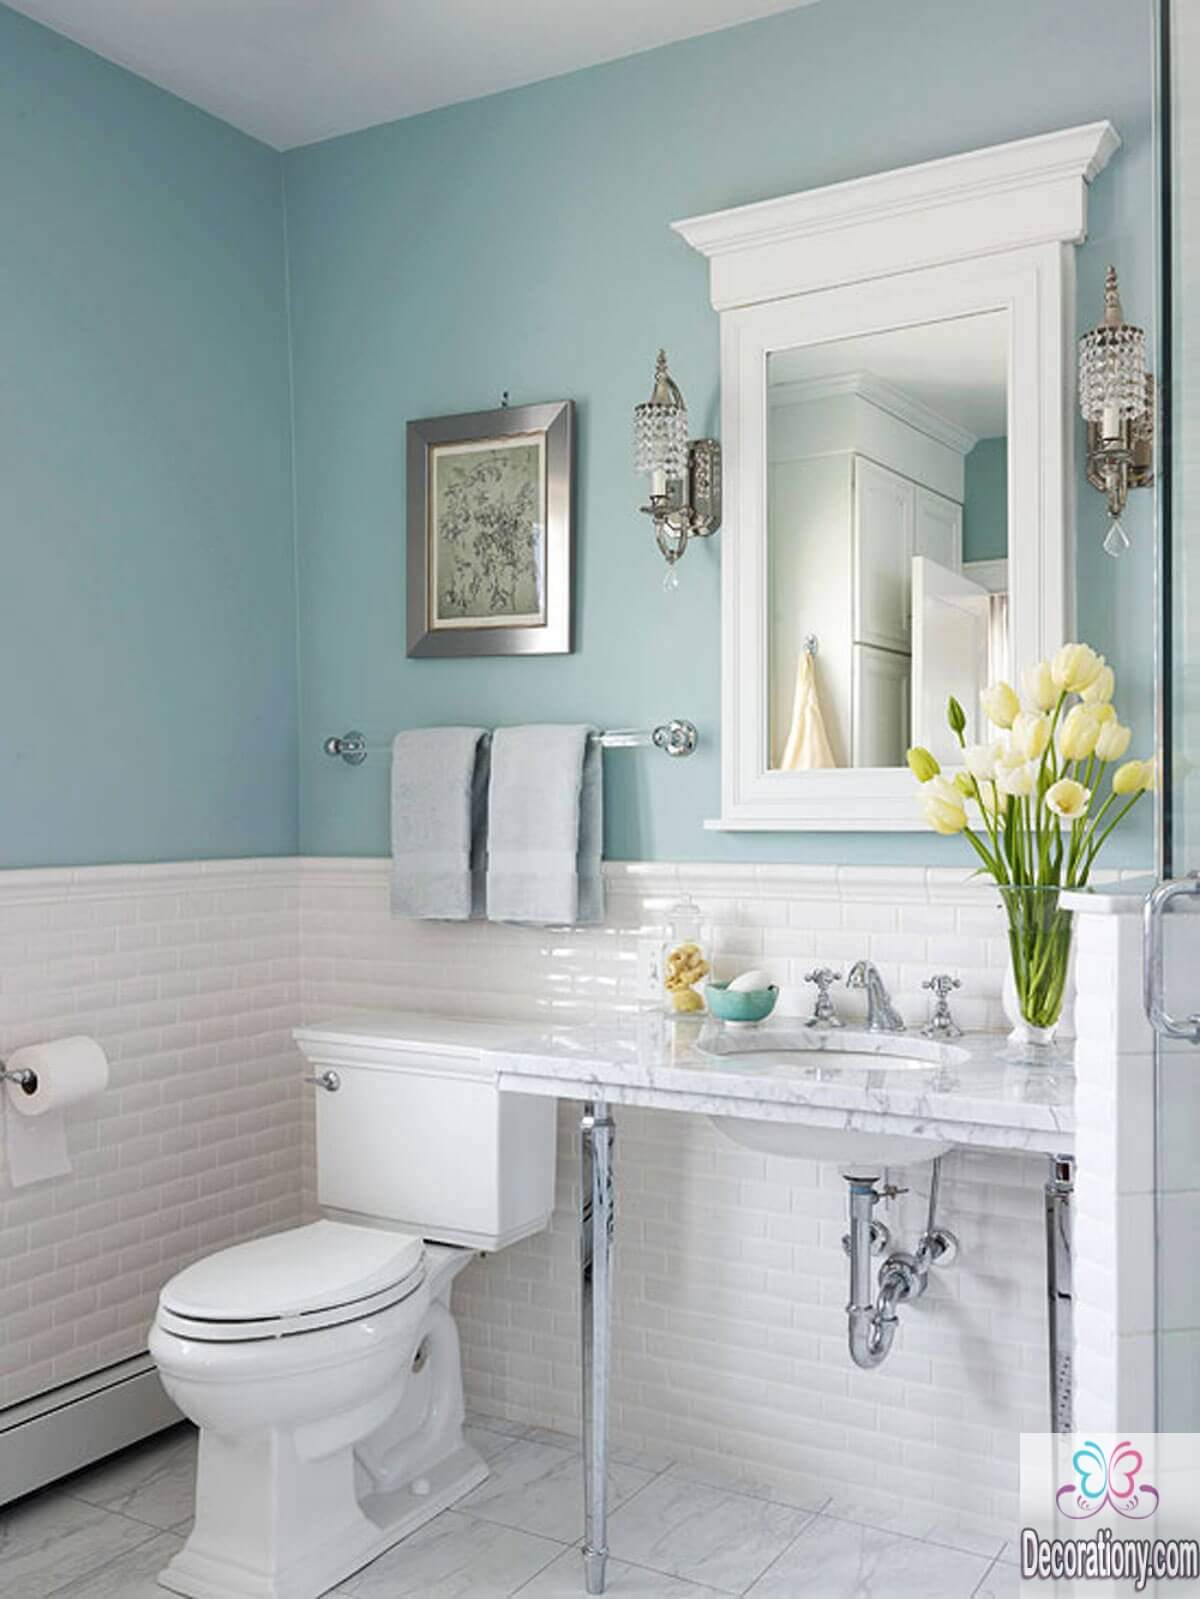 10 affordable colors for small bathrooms decoration y Small bathroom ideas with pictures